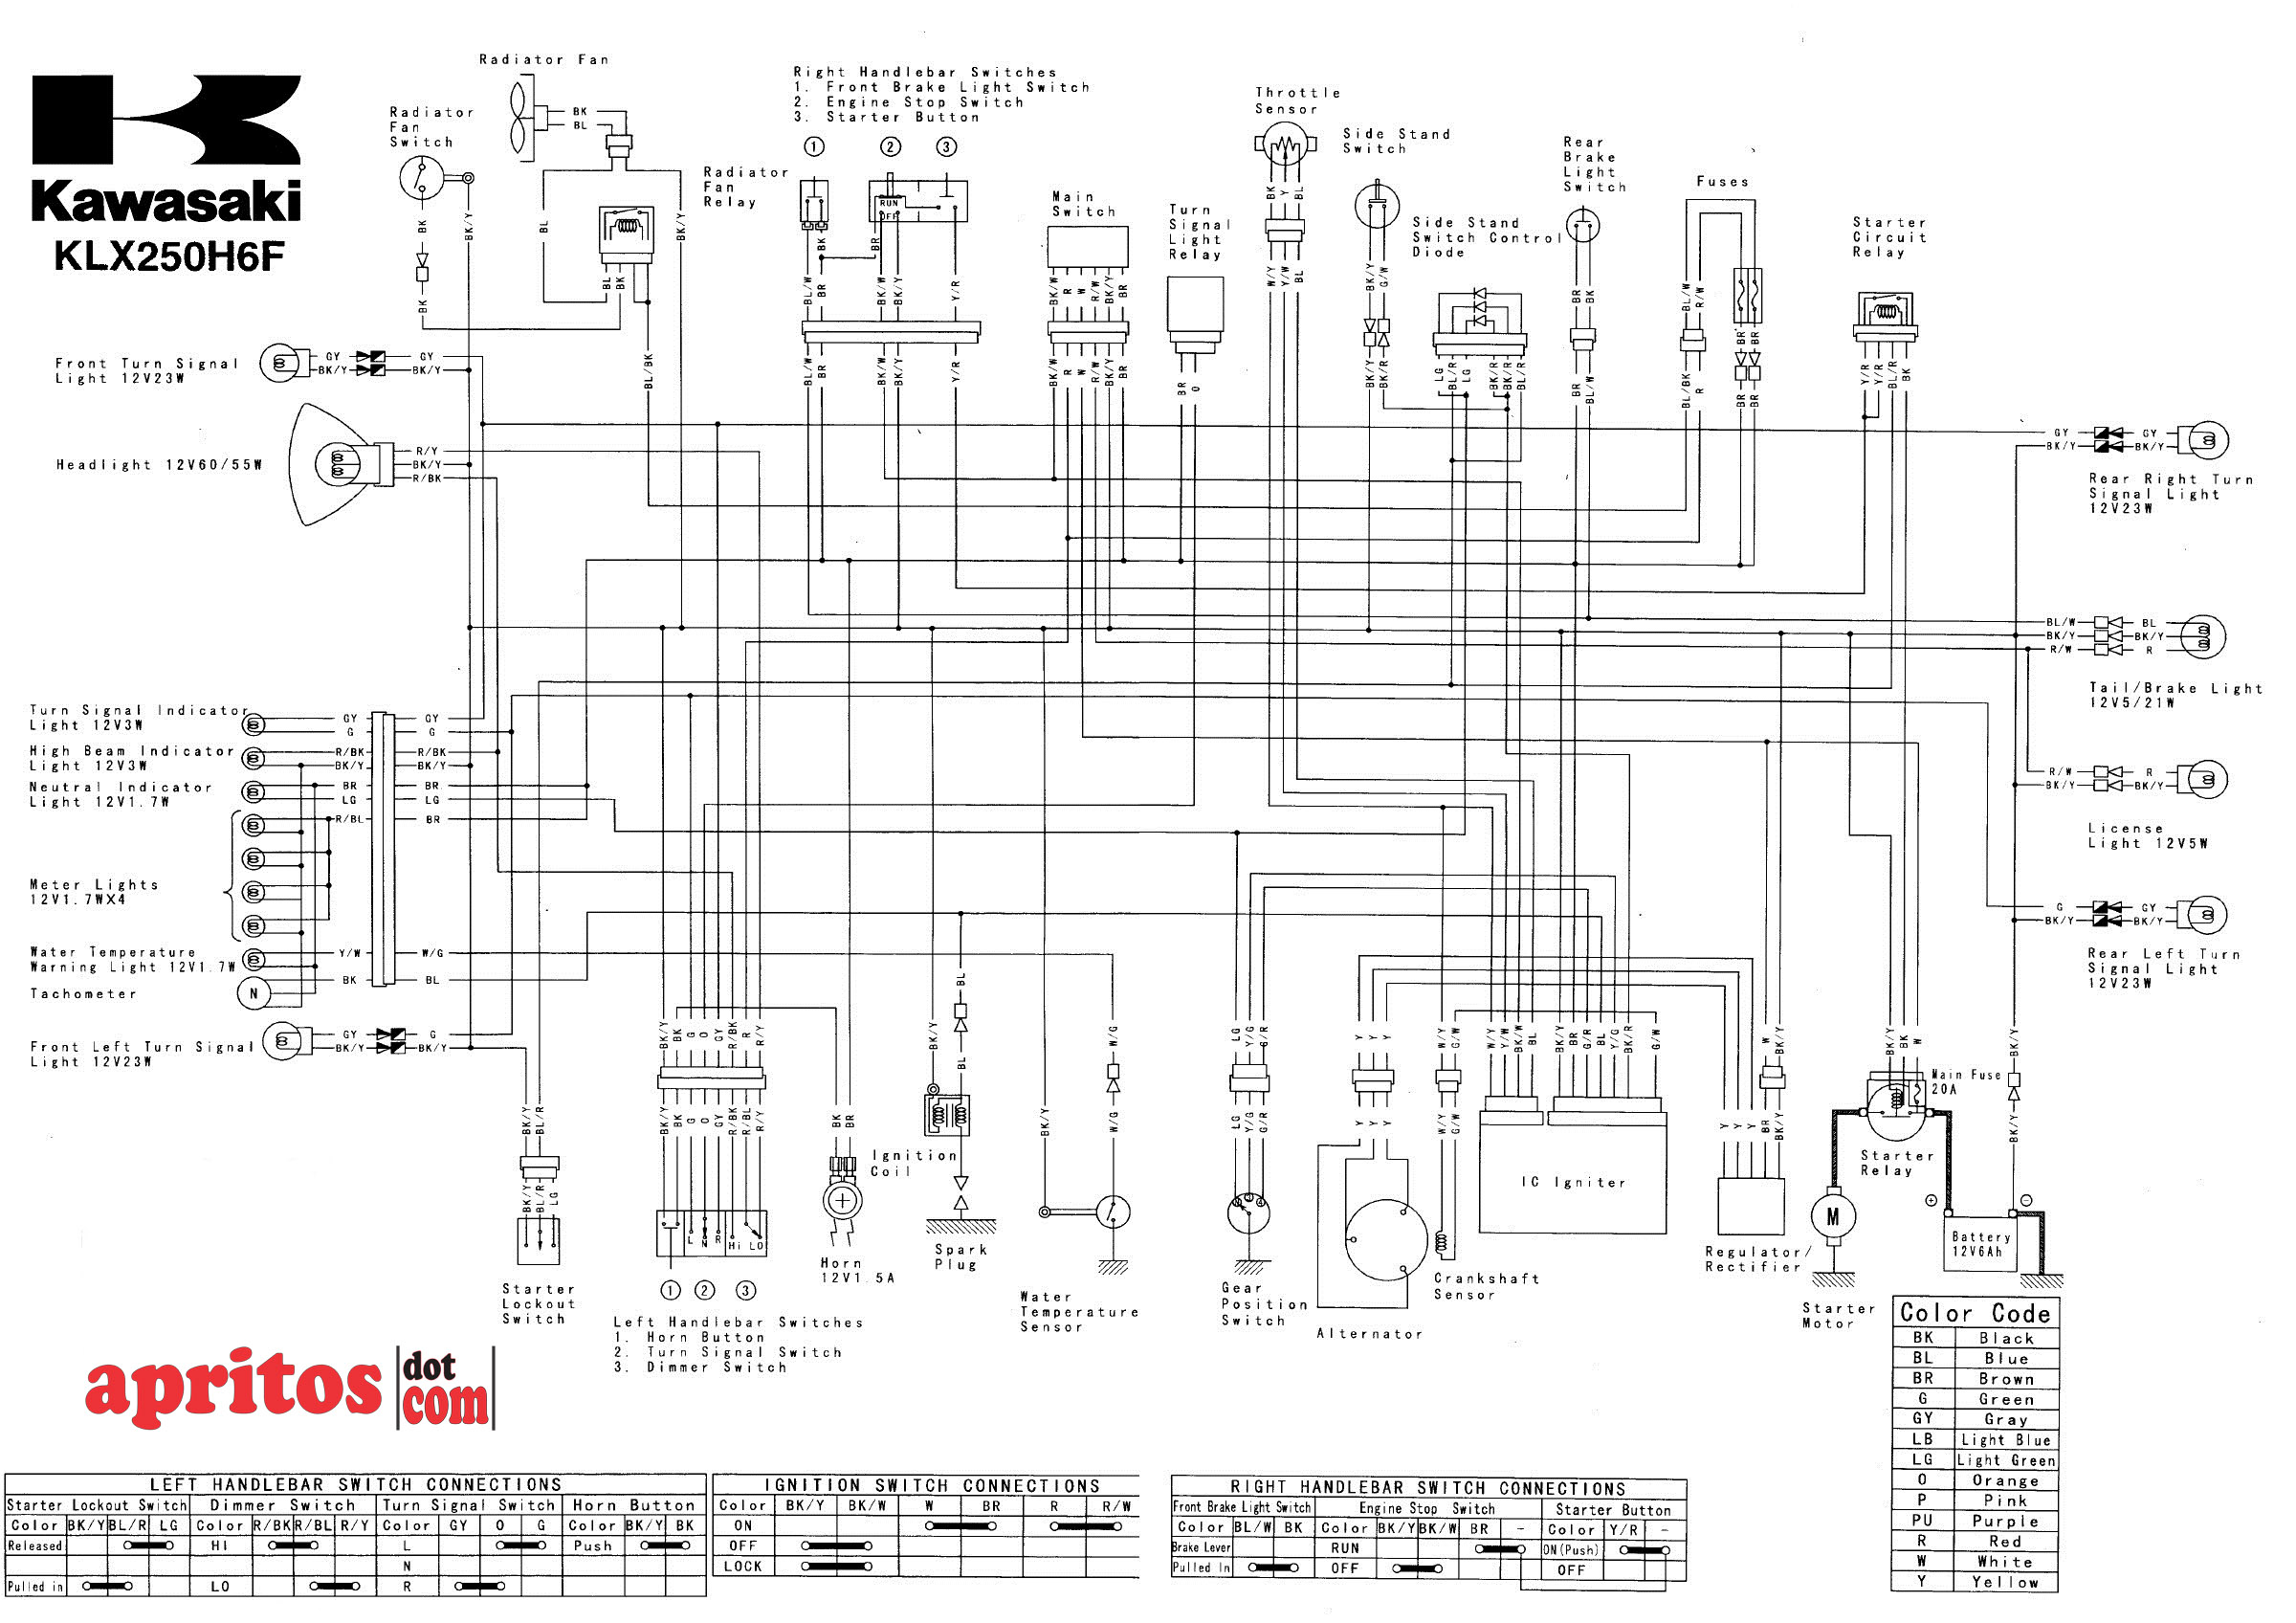 wiring diagram klx 250 2006 to 2007 diagrams 599428 megaflow wiring diagram megaflo unvented drayton rb1 relay wiring diagram at fashall.co